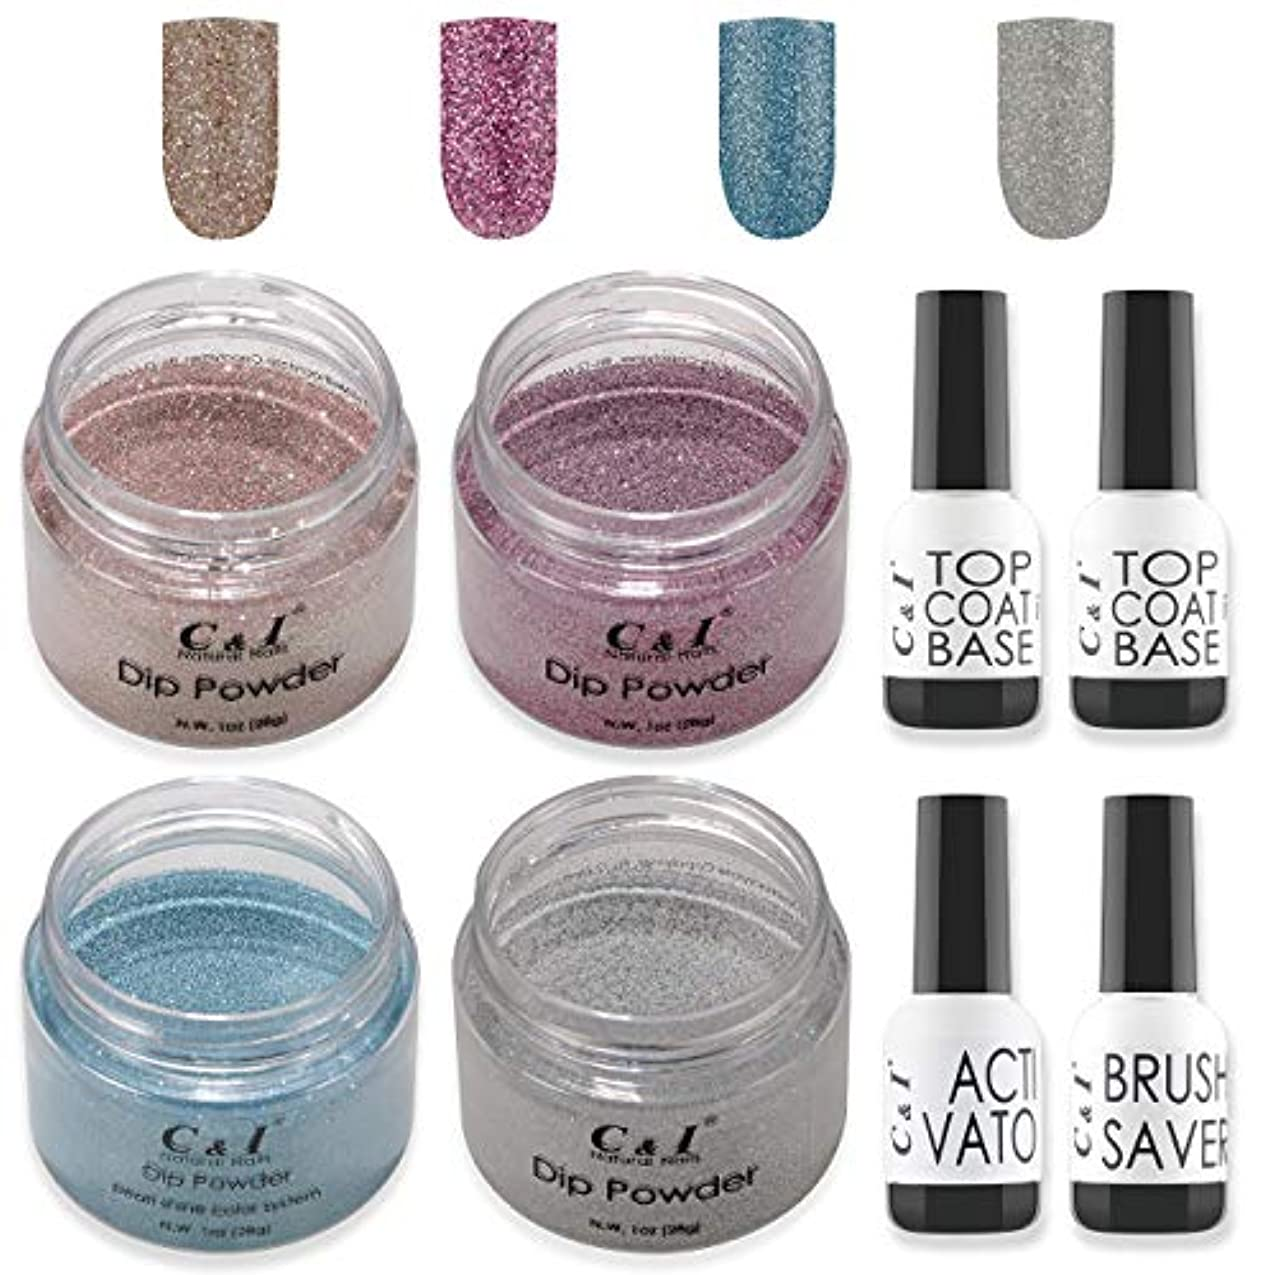 シンカン広く短命C&I Dip Powder Nail Colors & Liquids Set, 4 colors and 4 liquids, glittering nail powder, N.W. 28 g * 4 pcs &...